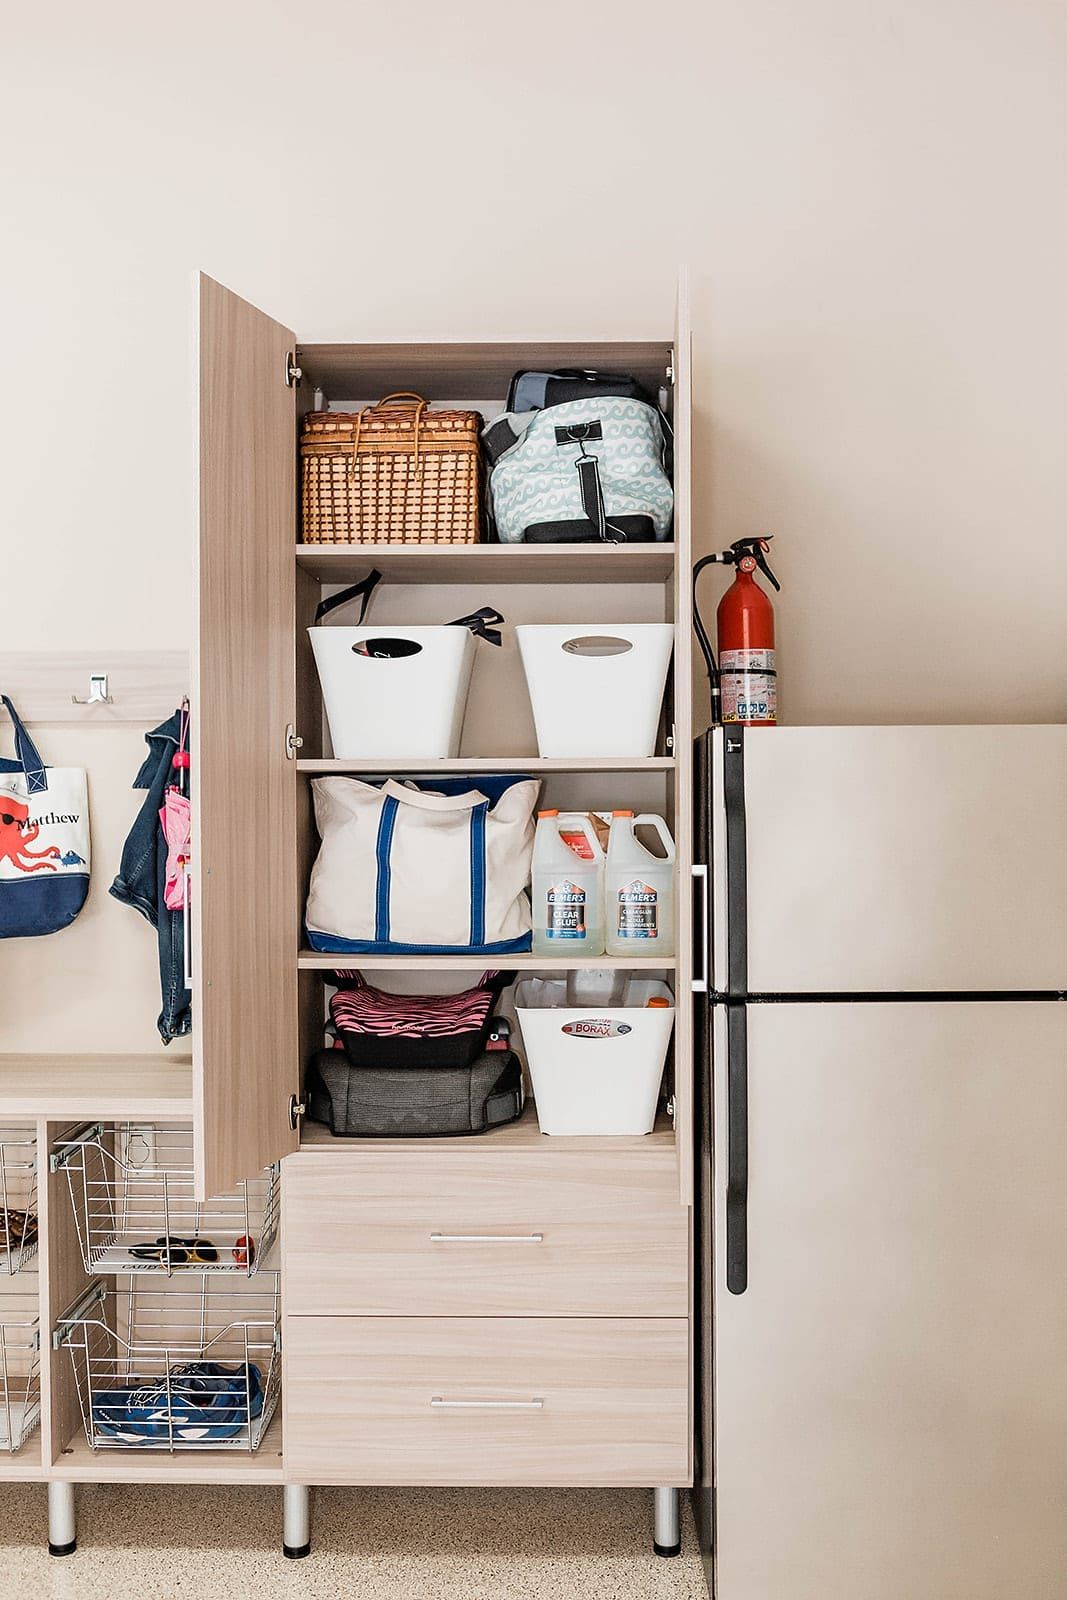 Storing Stuff in your Garage. What to store in your garage and where you should store it.